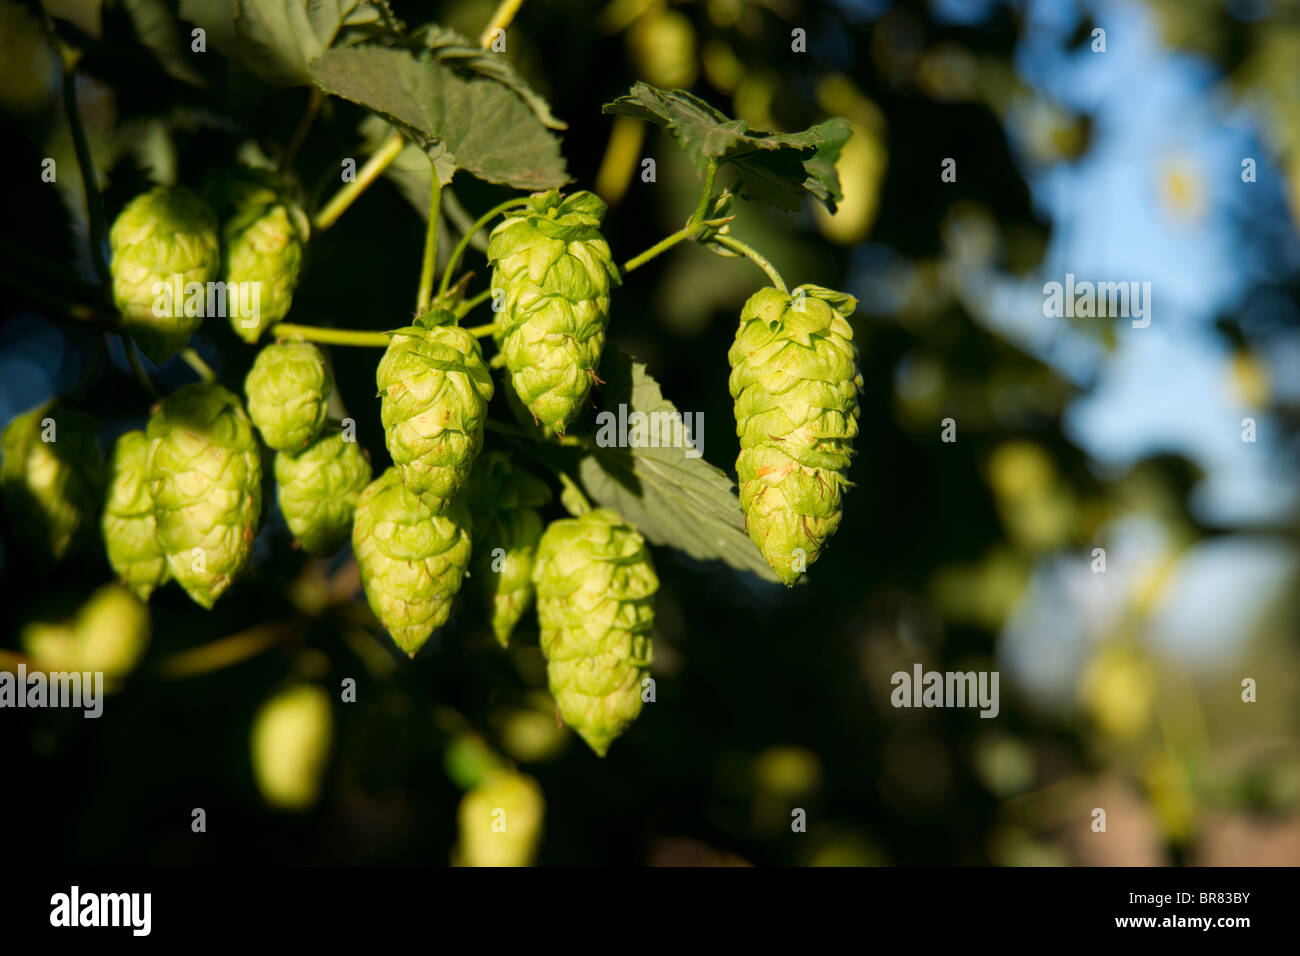 Hops growing on the vine in the field - Stock Image